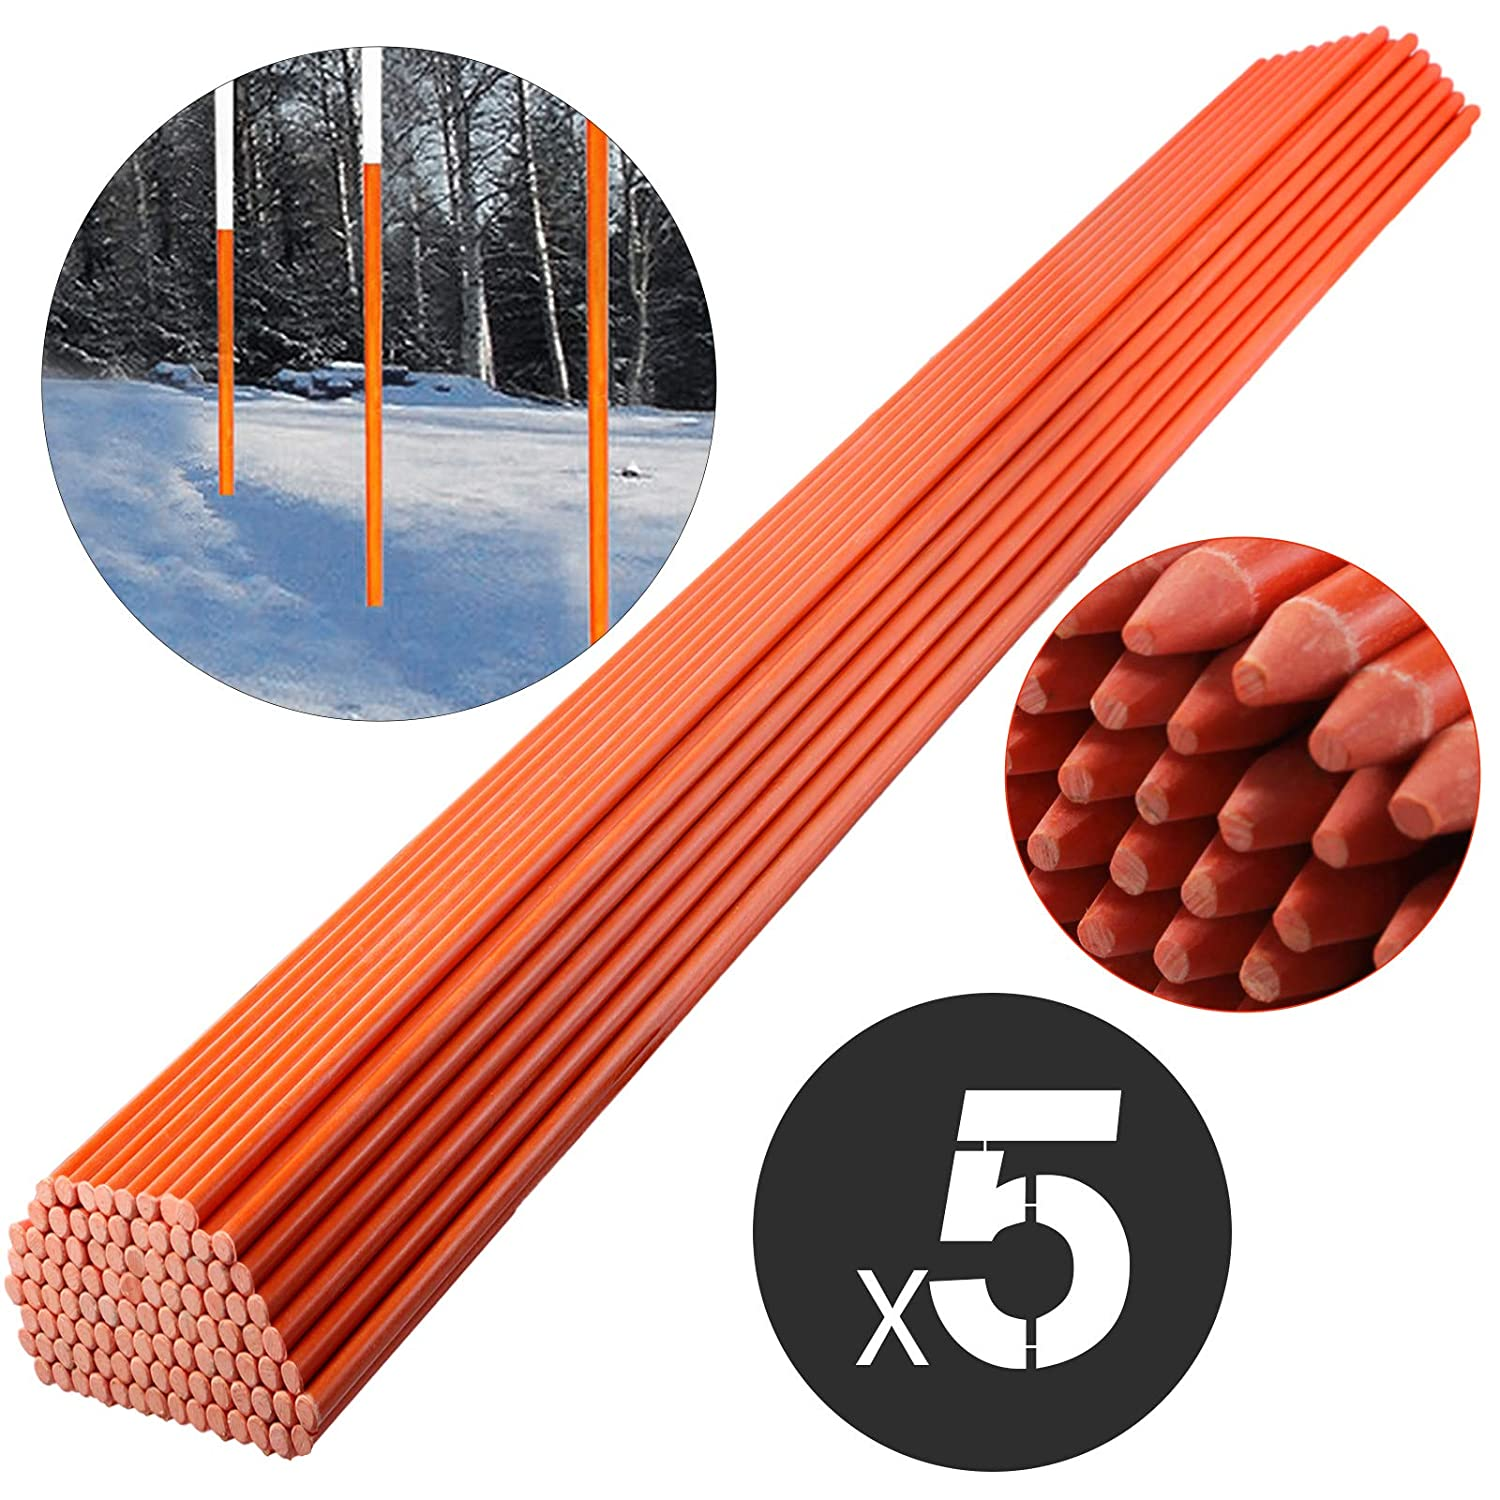 Mophorn Snow Stakes 5//16 Diameter x 48 Fiberglass Pole Driveway Marker Orange with Reflective Tape 200-Pack with Orange Cap Plow Stakes for Easy Visibility at Night